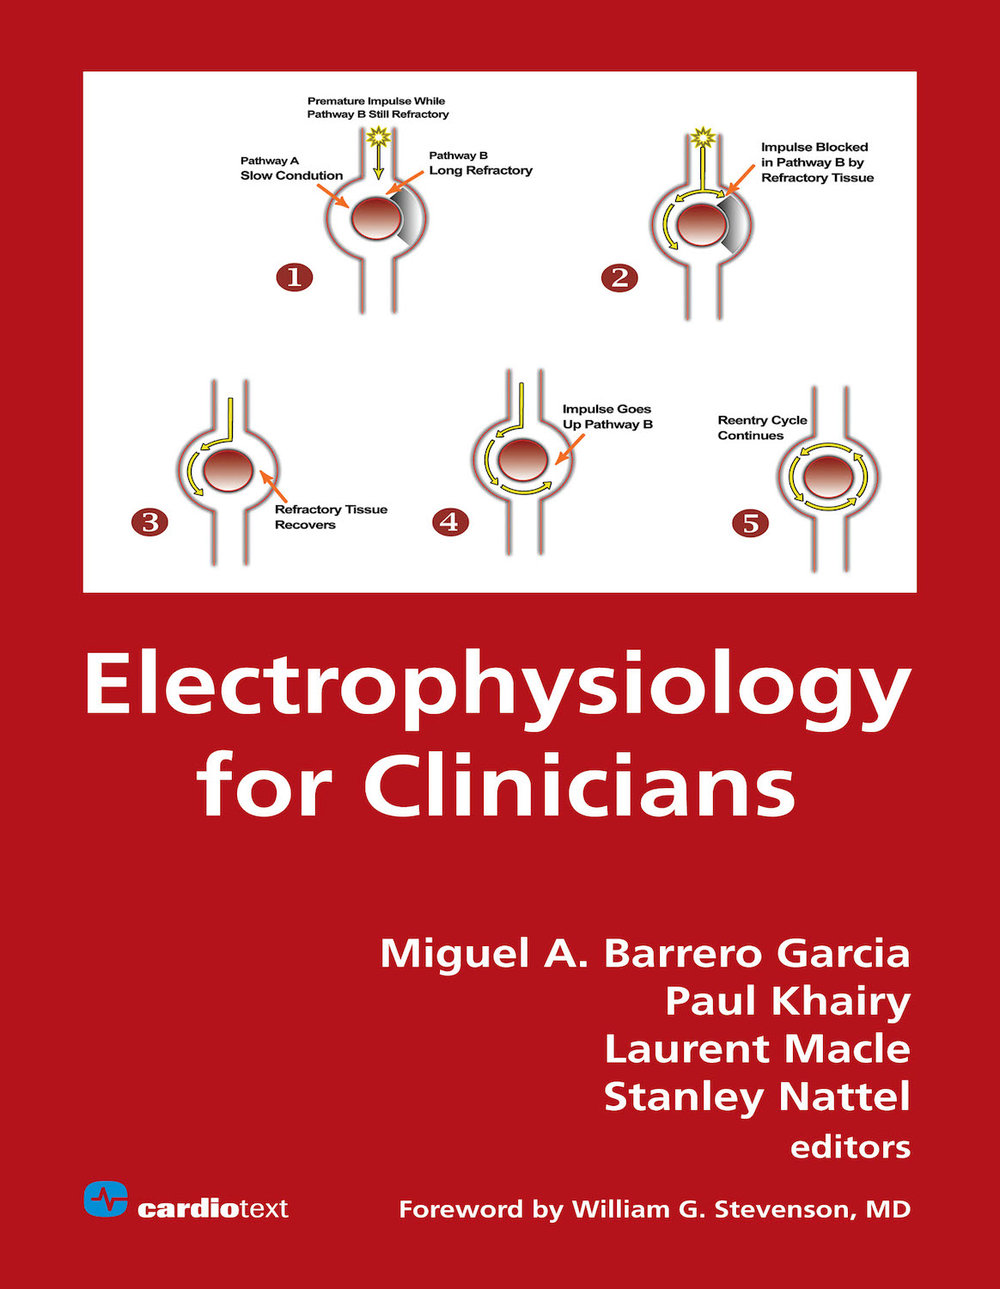 Electrophysiology for Clinicians